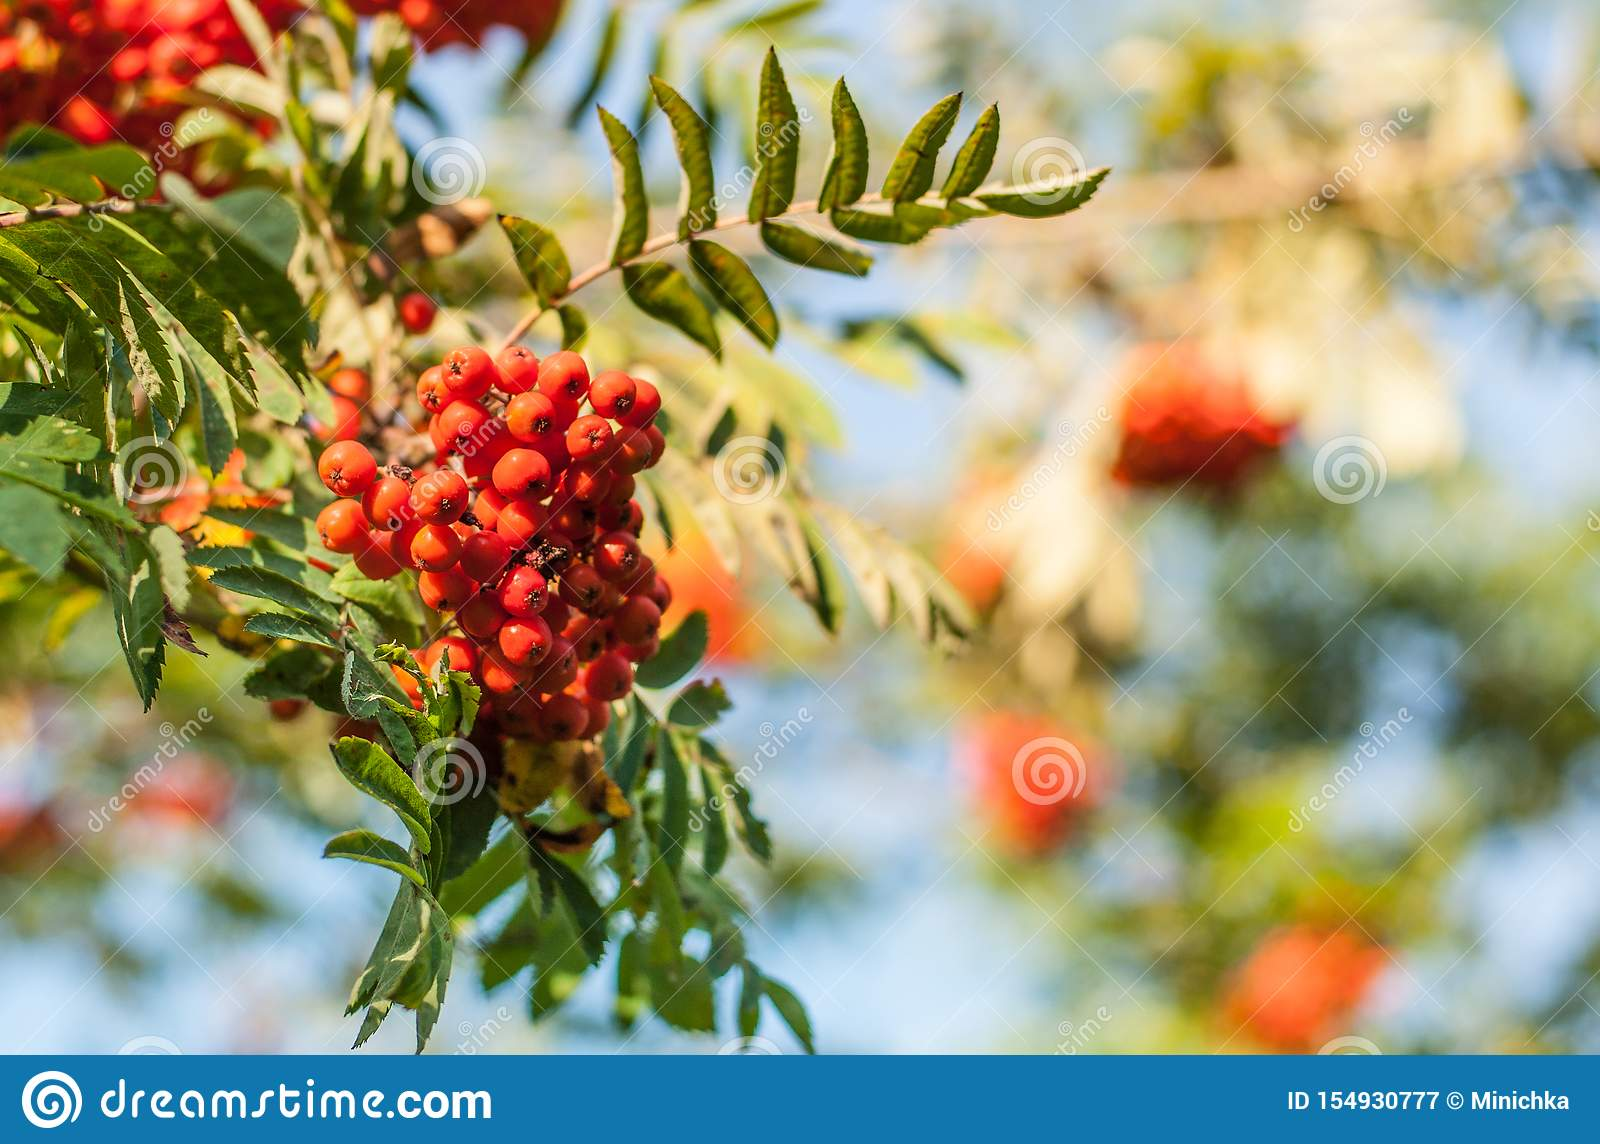 Red mountain ash berries on a brunch